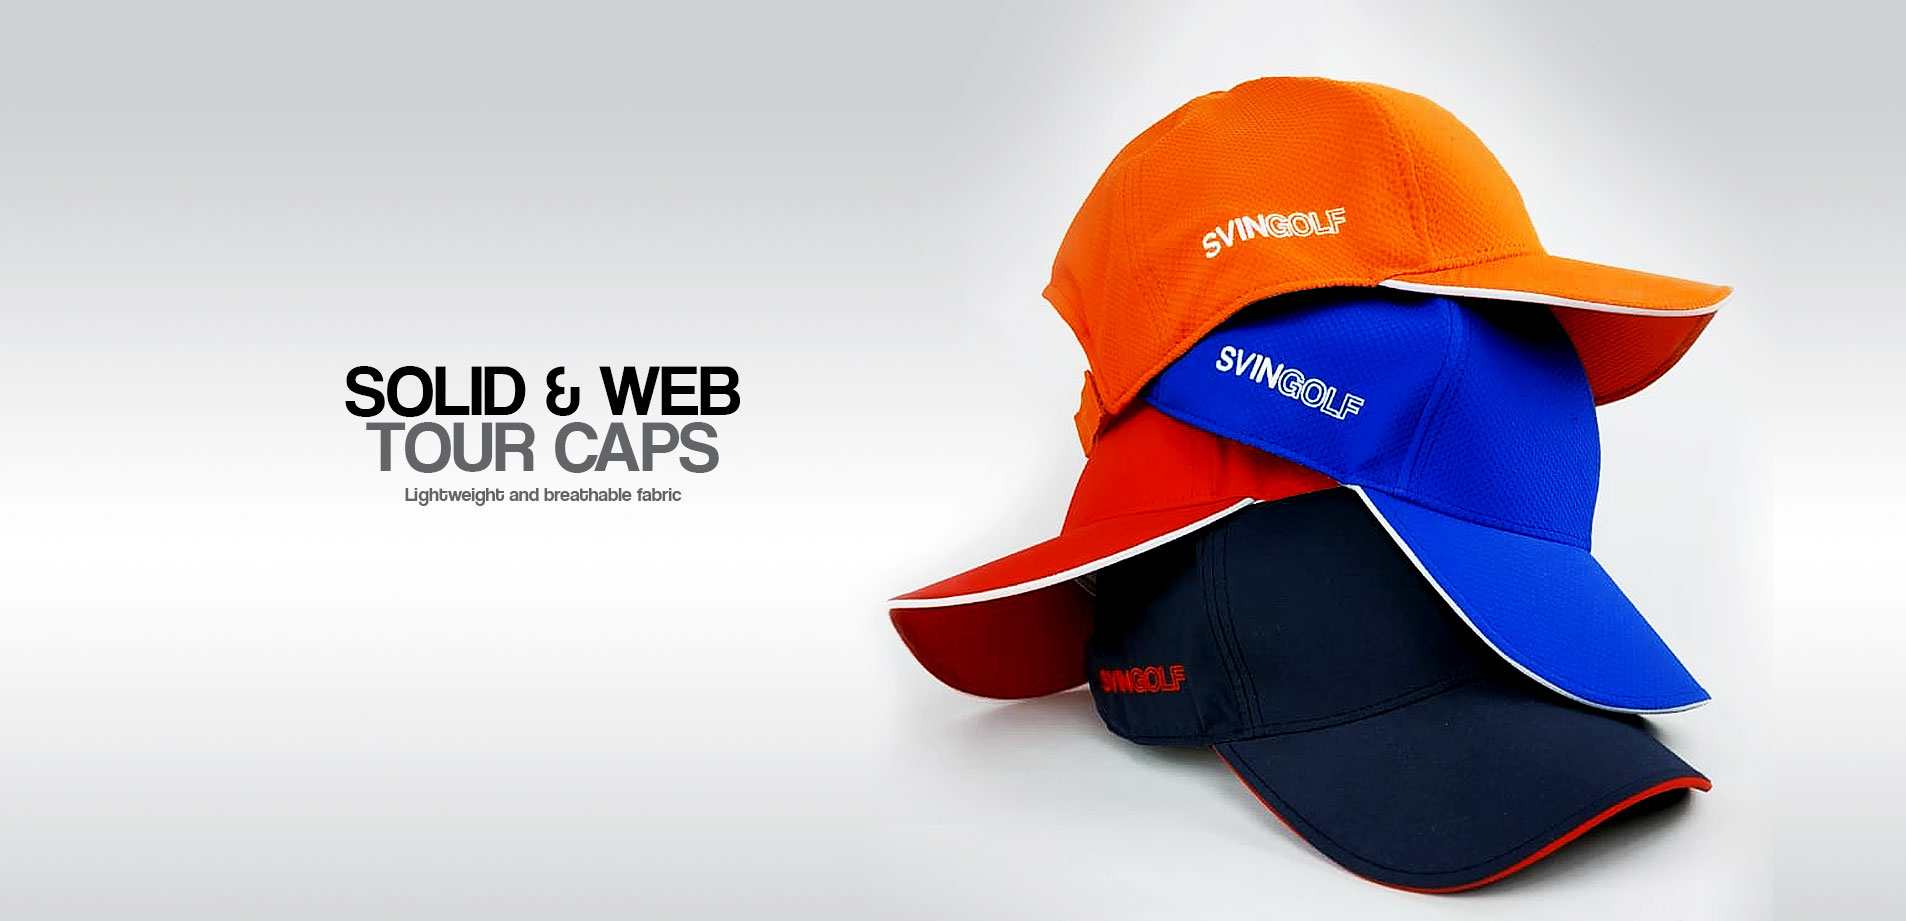 SOLID & WEB TOUR CAPS